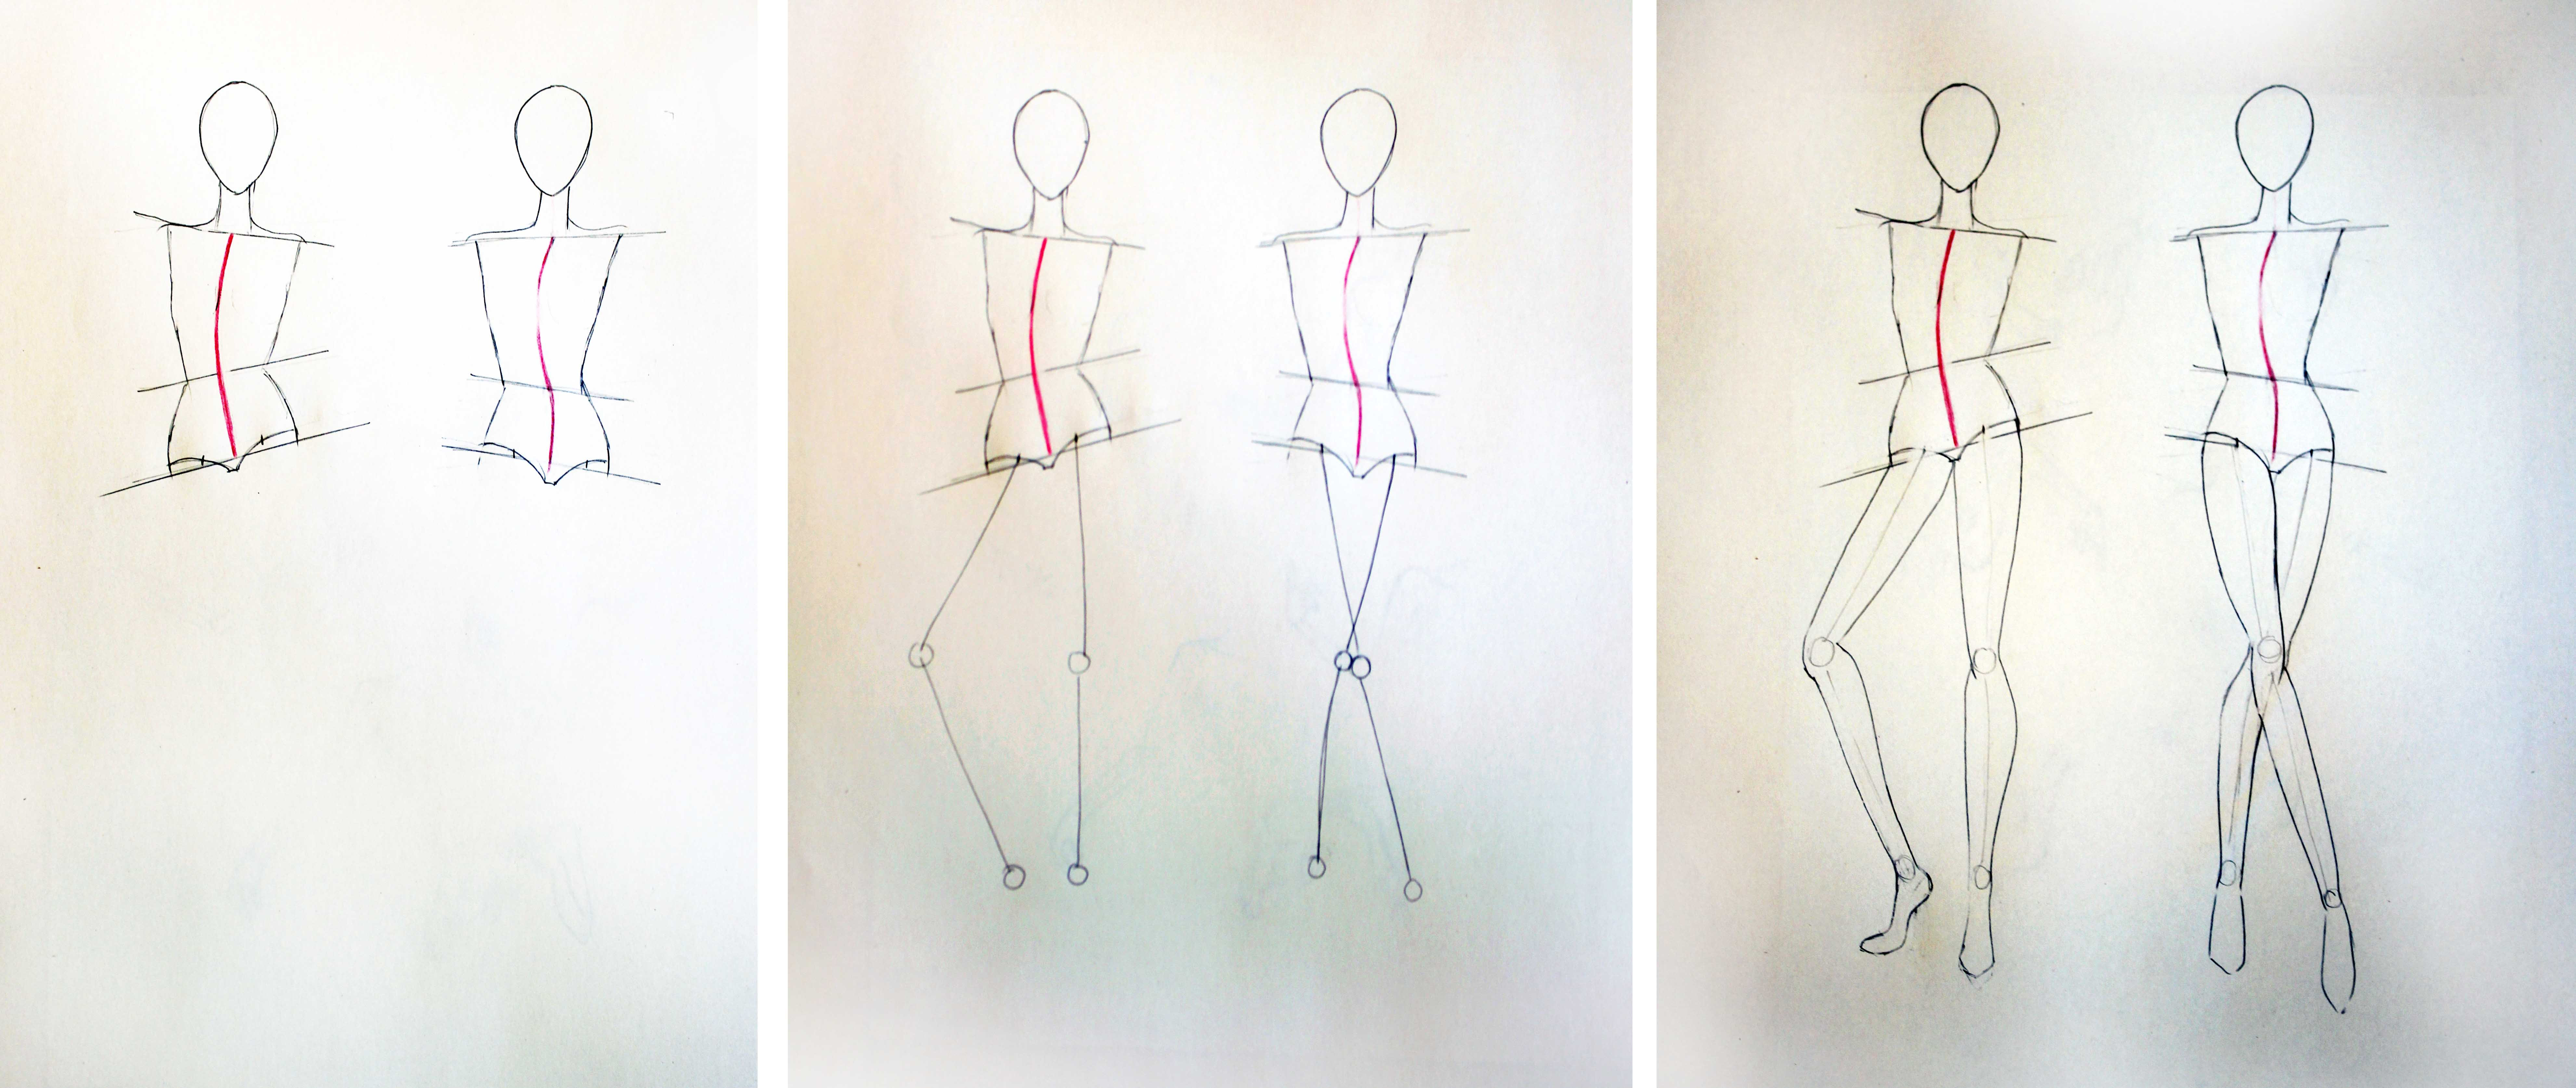 Drawing different pose in fashion figure's legs - Online fashion design tutorial